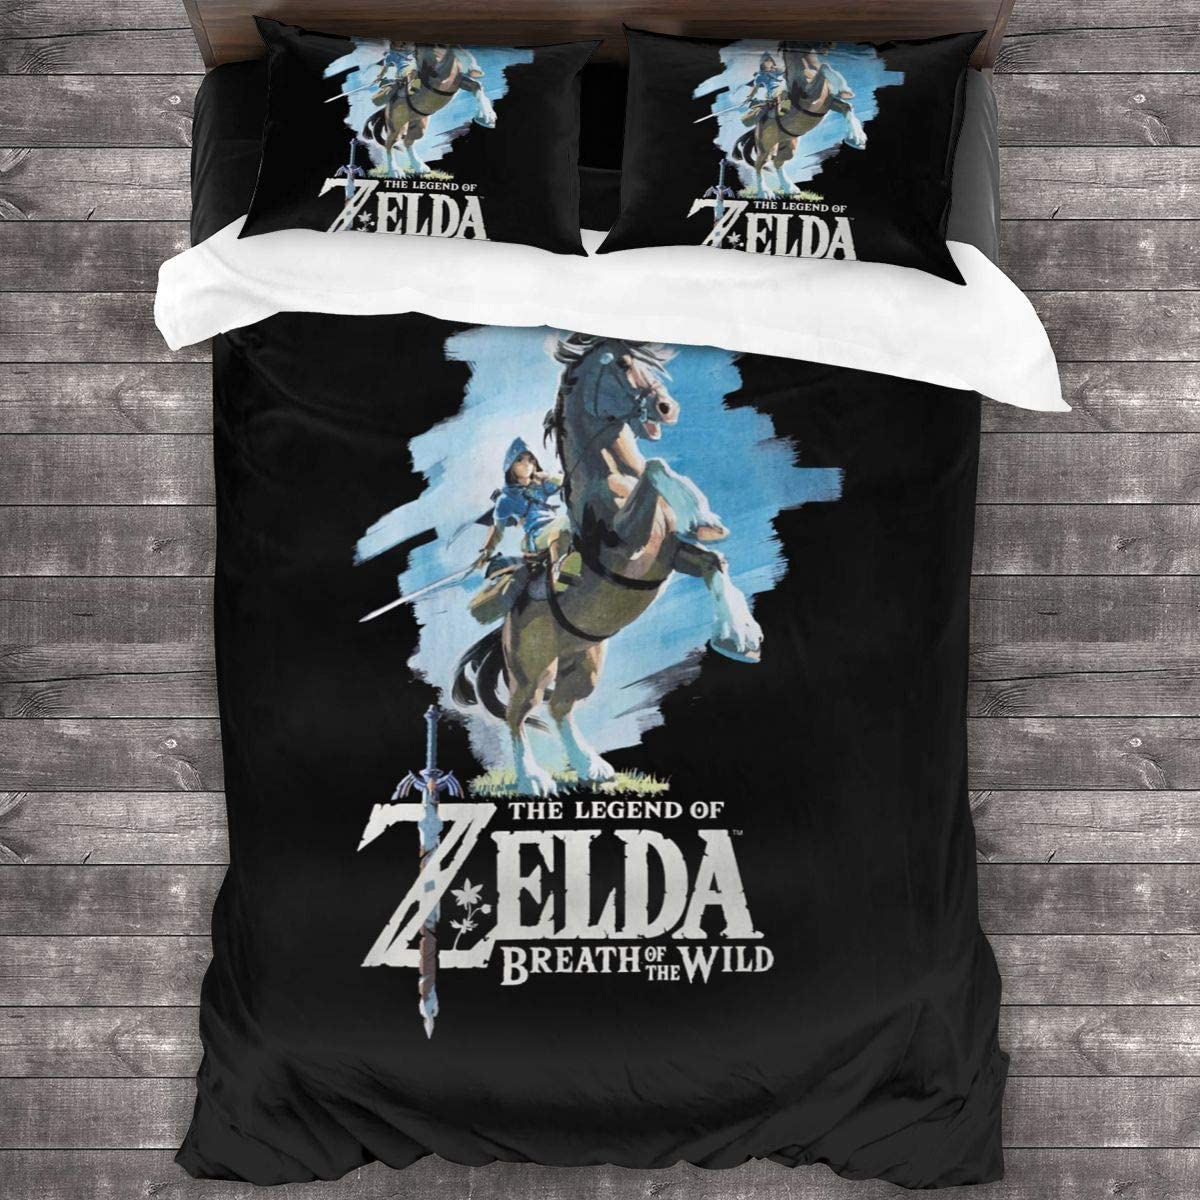 Amazon Com Legend Of Zelda Breath Of The Wild Bedding Bed Sheet Set 3 Piece Bedding Shrinkage Fade Resistant Easy Care Home Kitchen